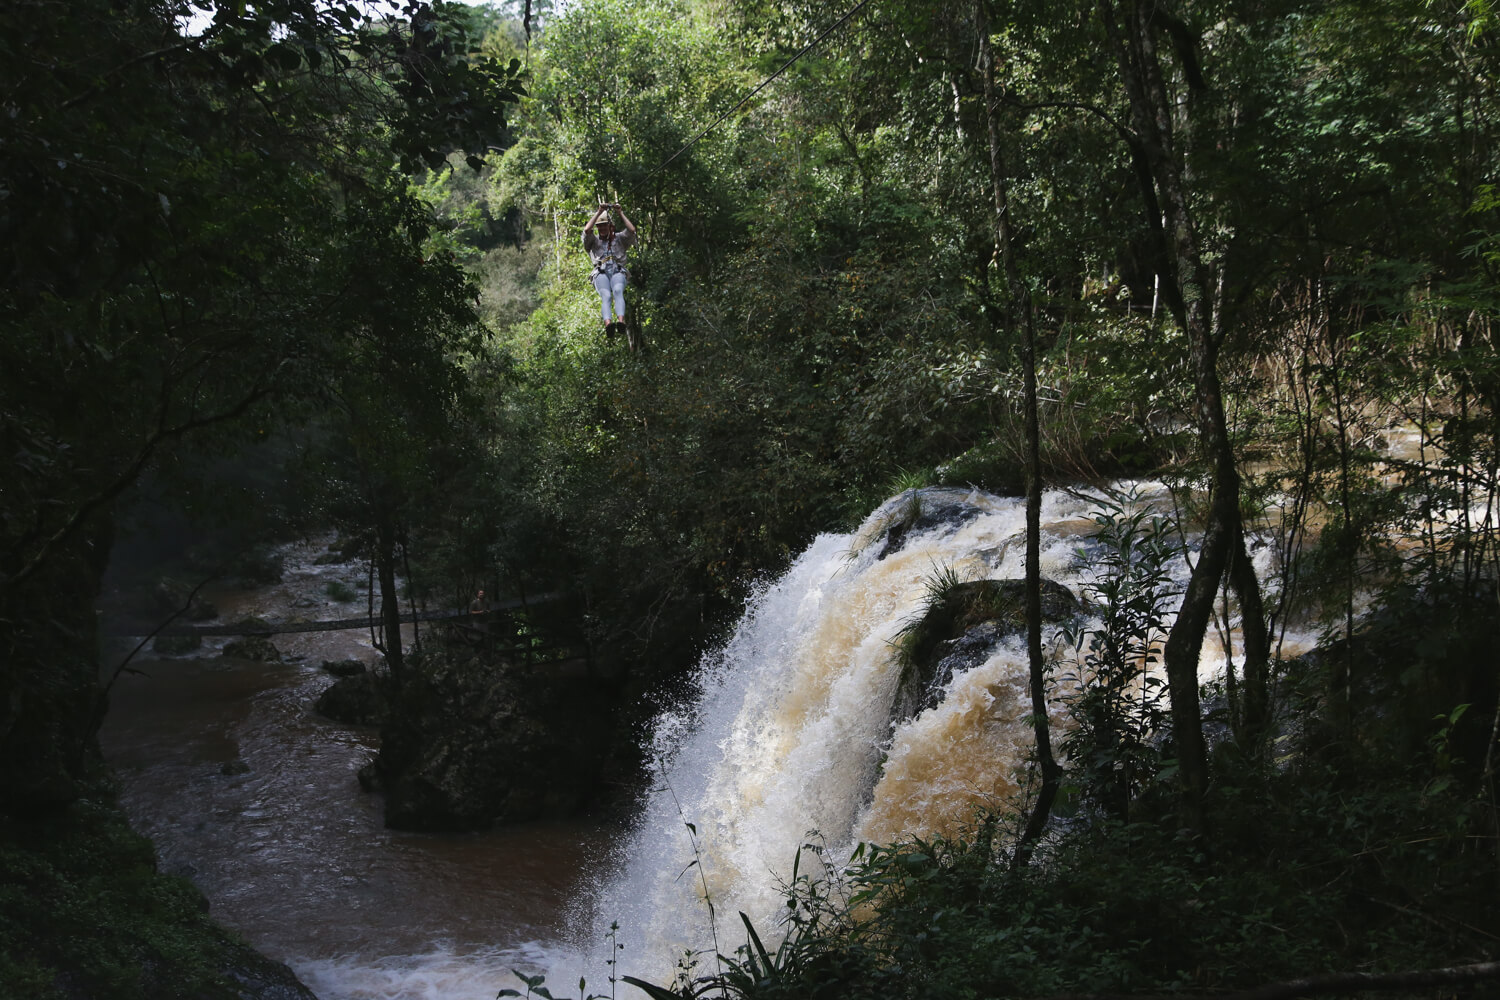 A woman zip lining over a waterfall in the Argentine jungle on a northeast Argentina road trip